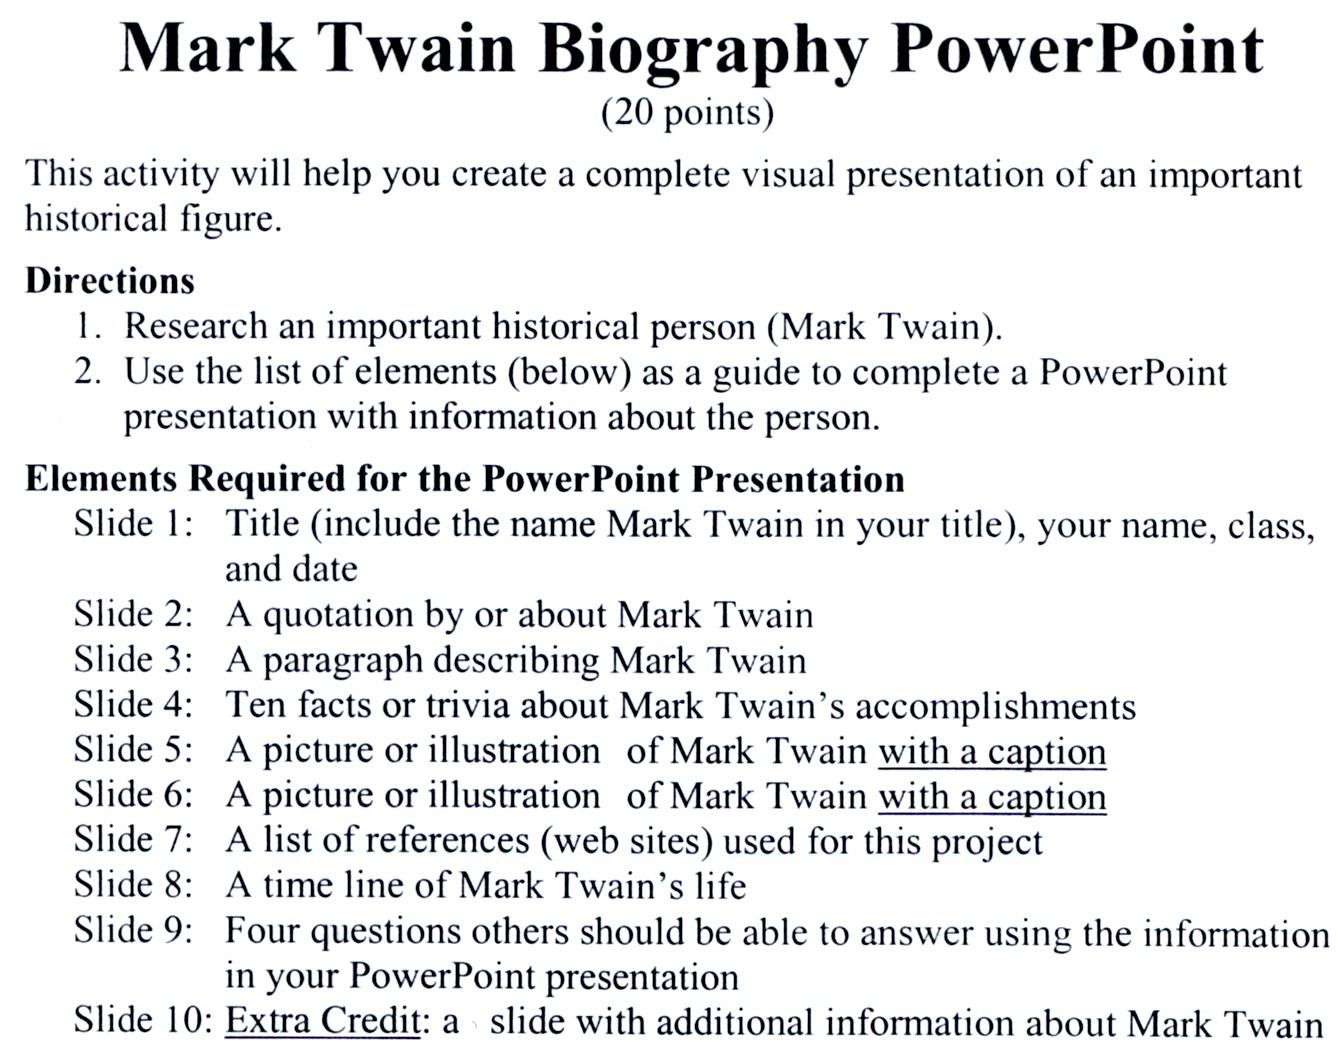 mark twain bio essay Free essay: biography of mark twain mark twain was a writer whose works revolved around his childhood experiences growing up on the mississippi river the.